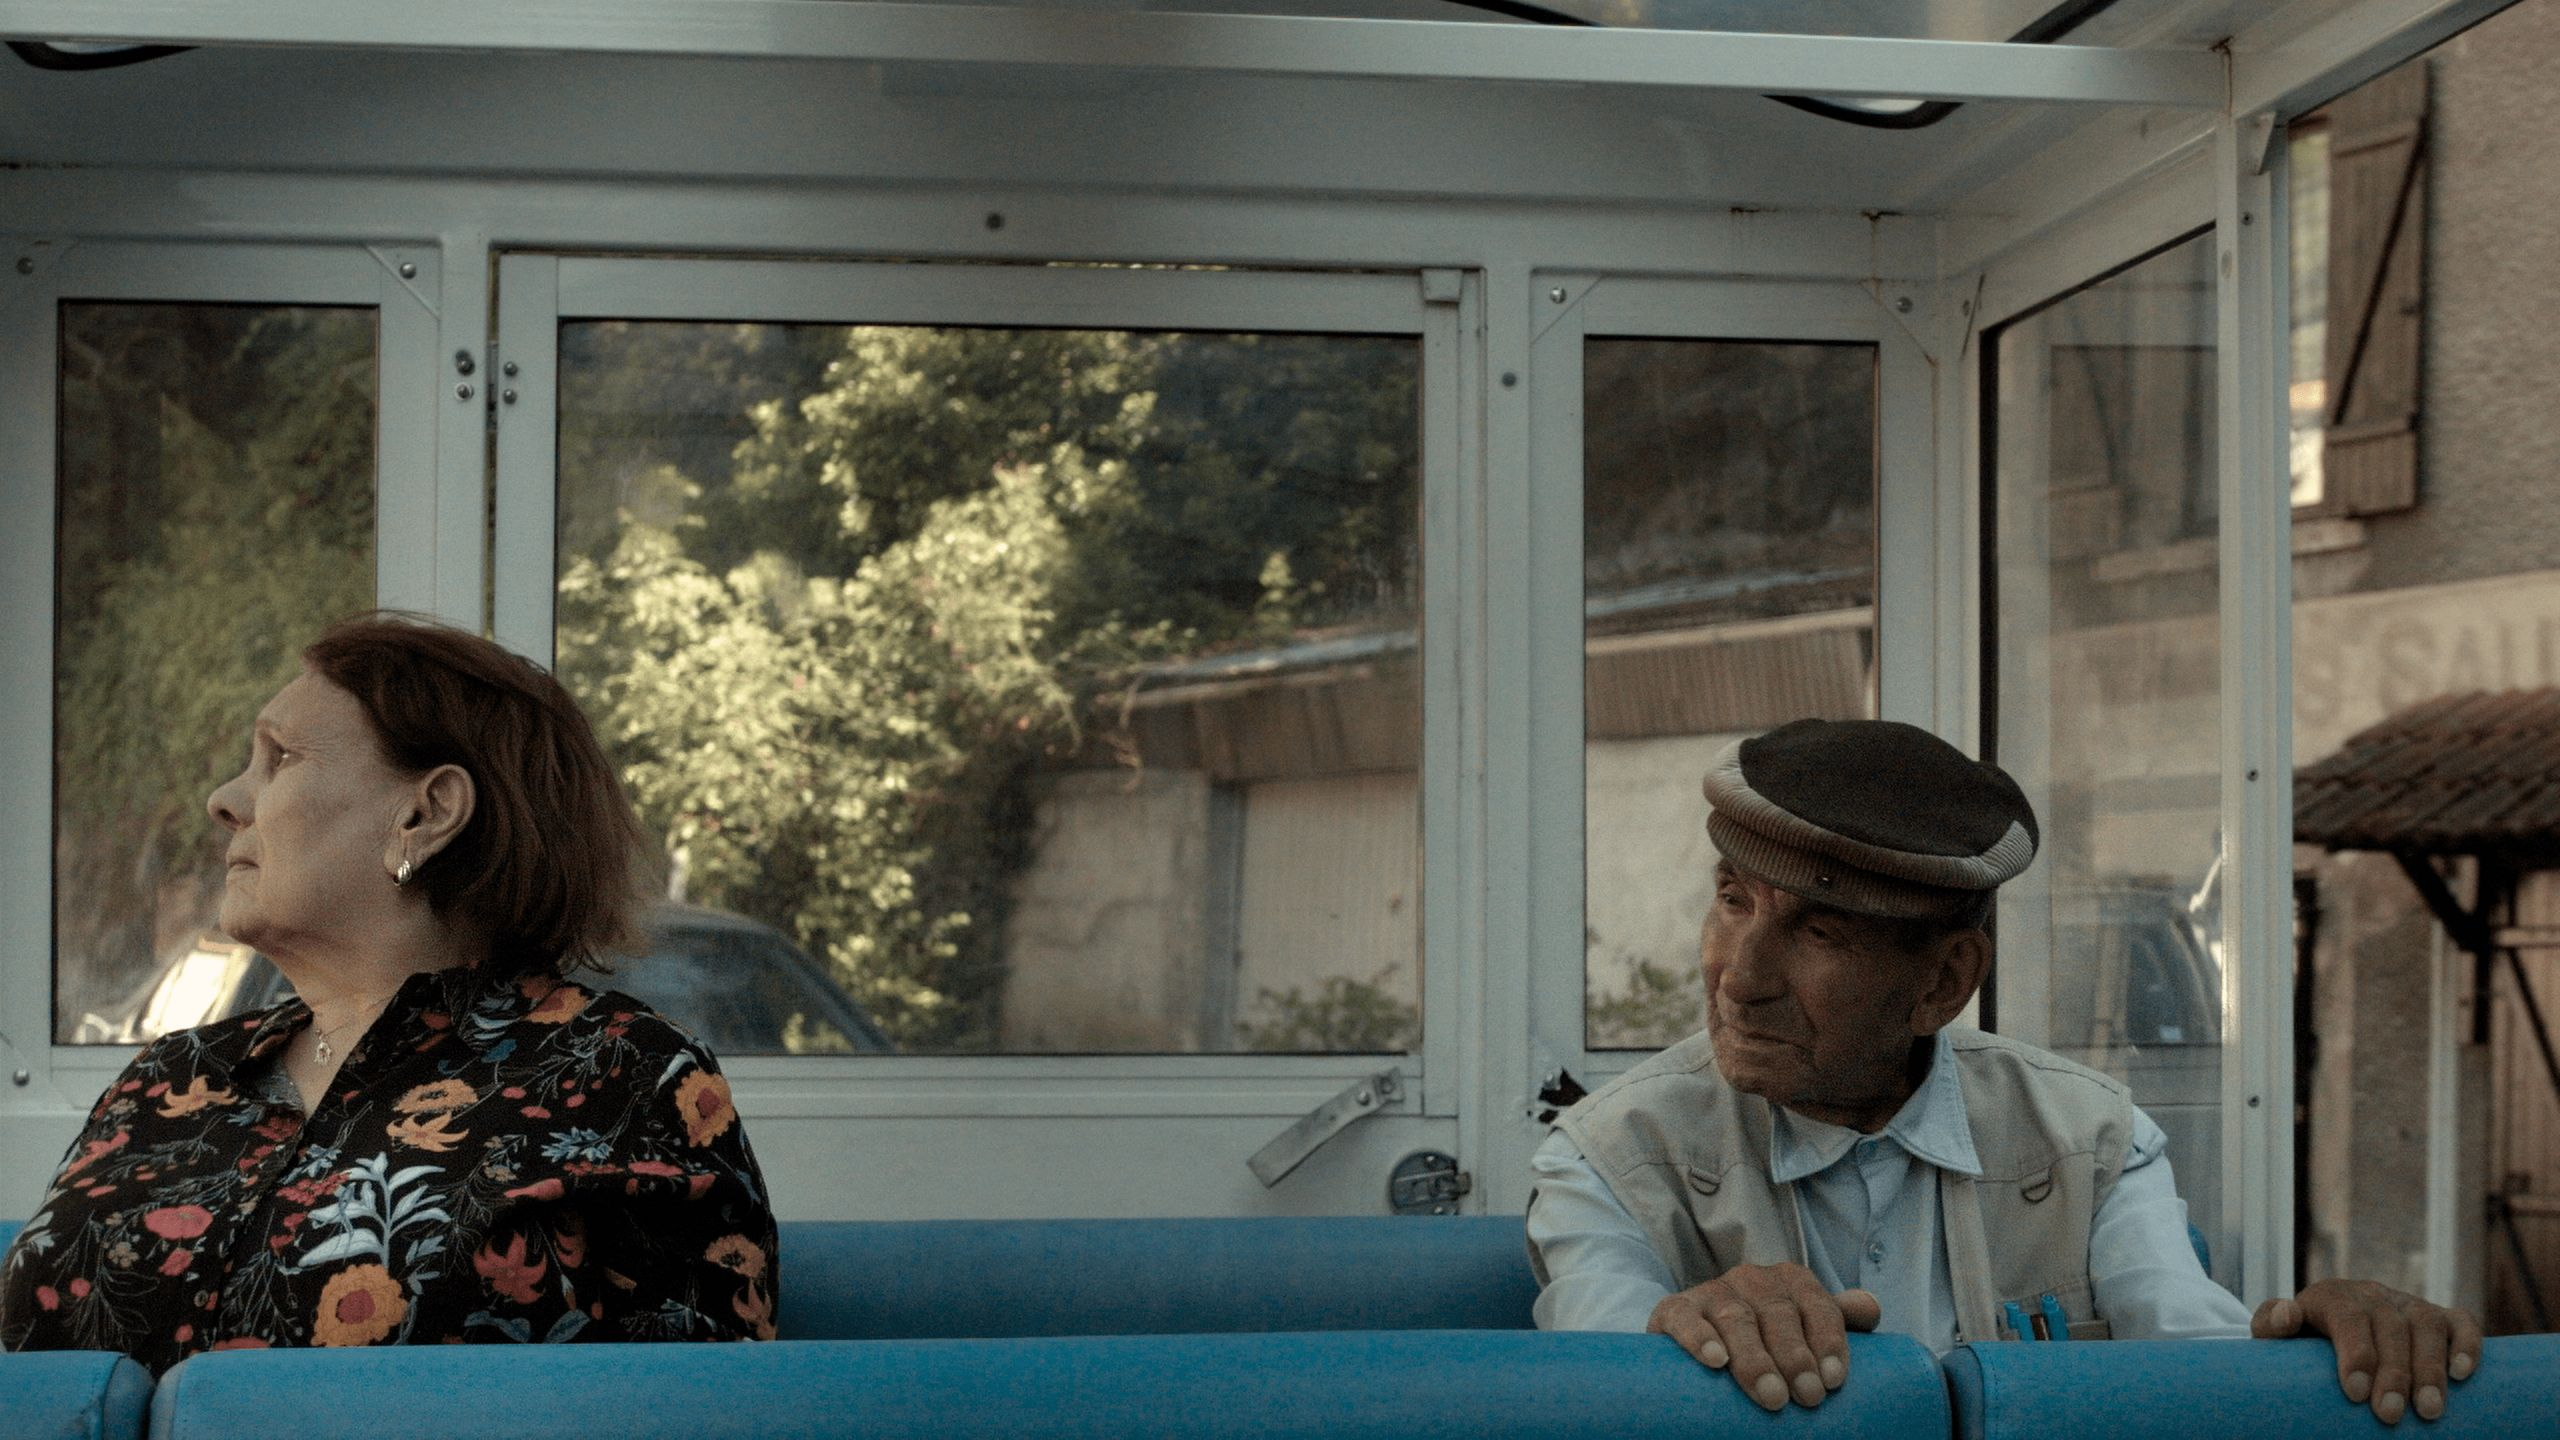 An elderly man and woman sitting on a bus